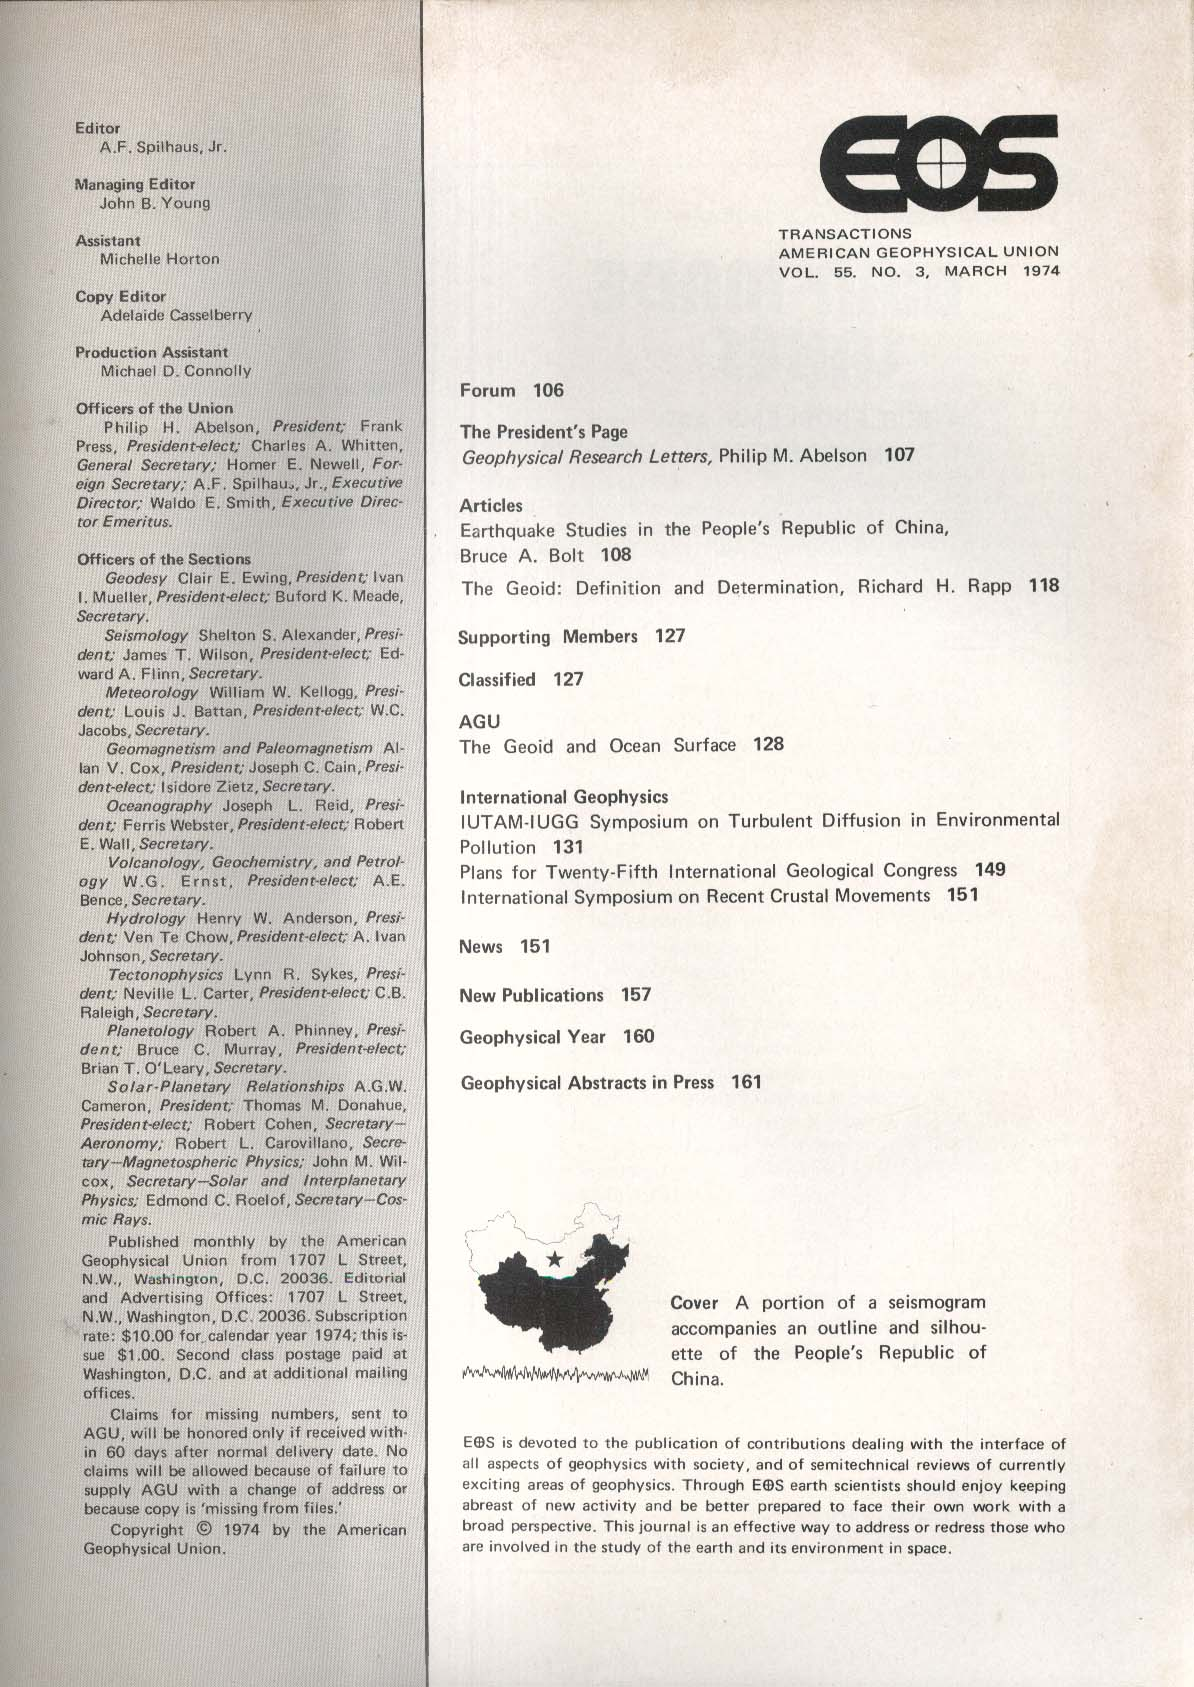 EOS Transactions American Geophysical Union 3 1974 China Earthquake Studies +